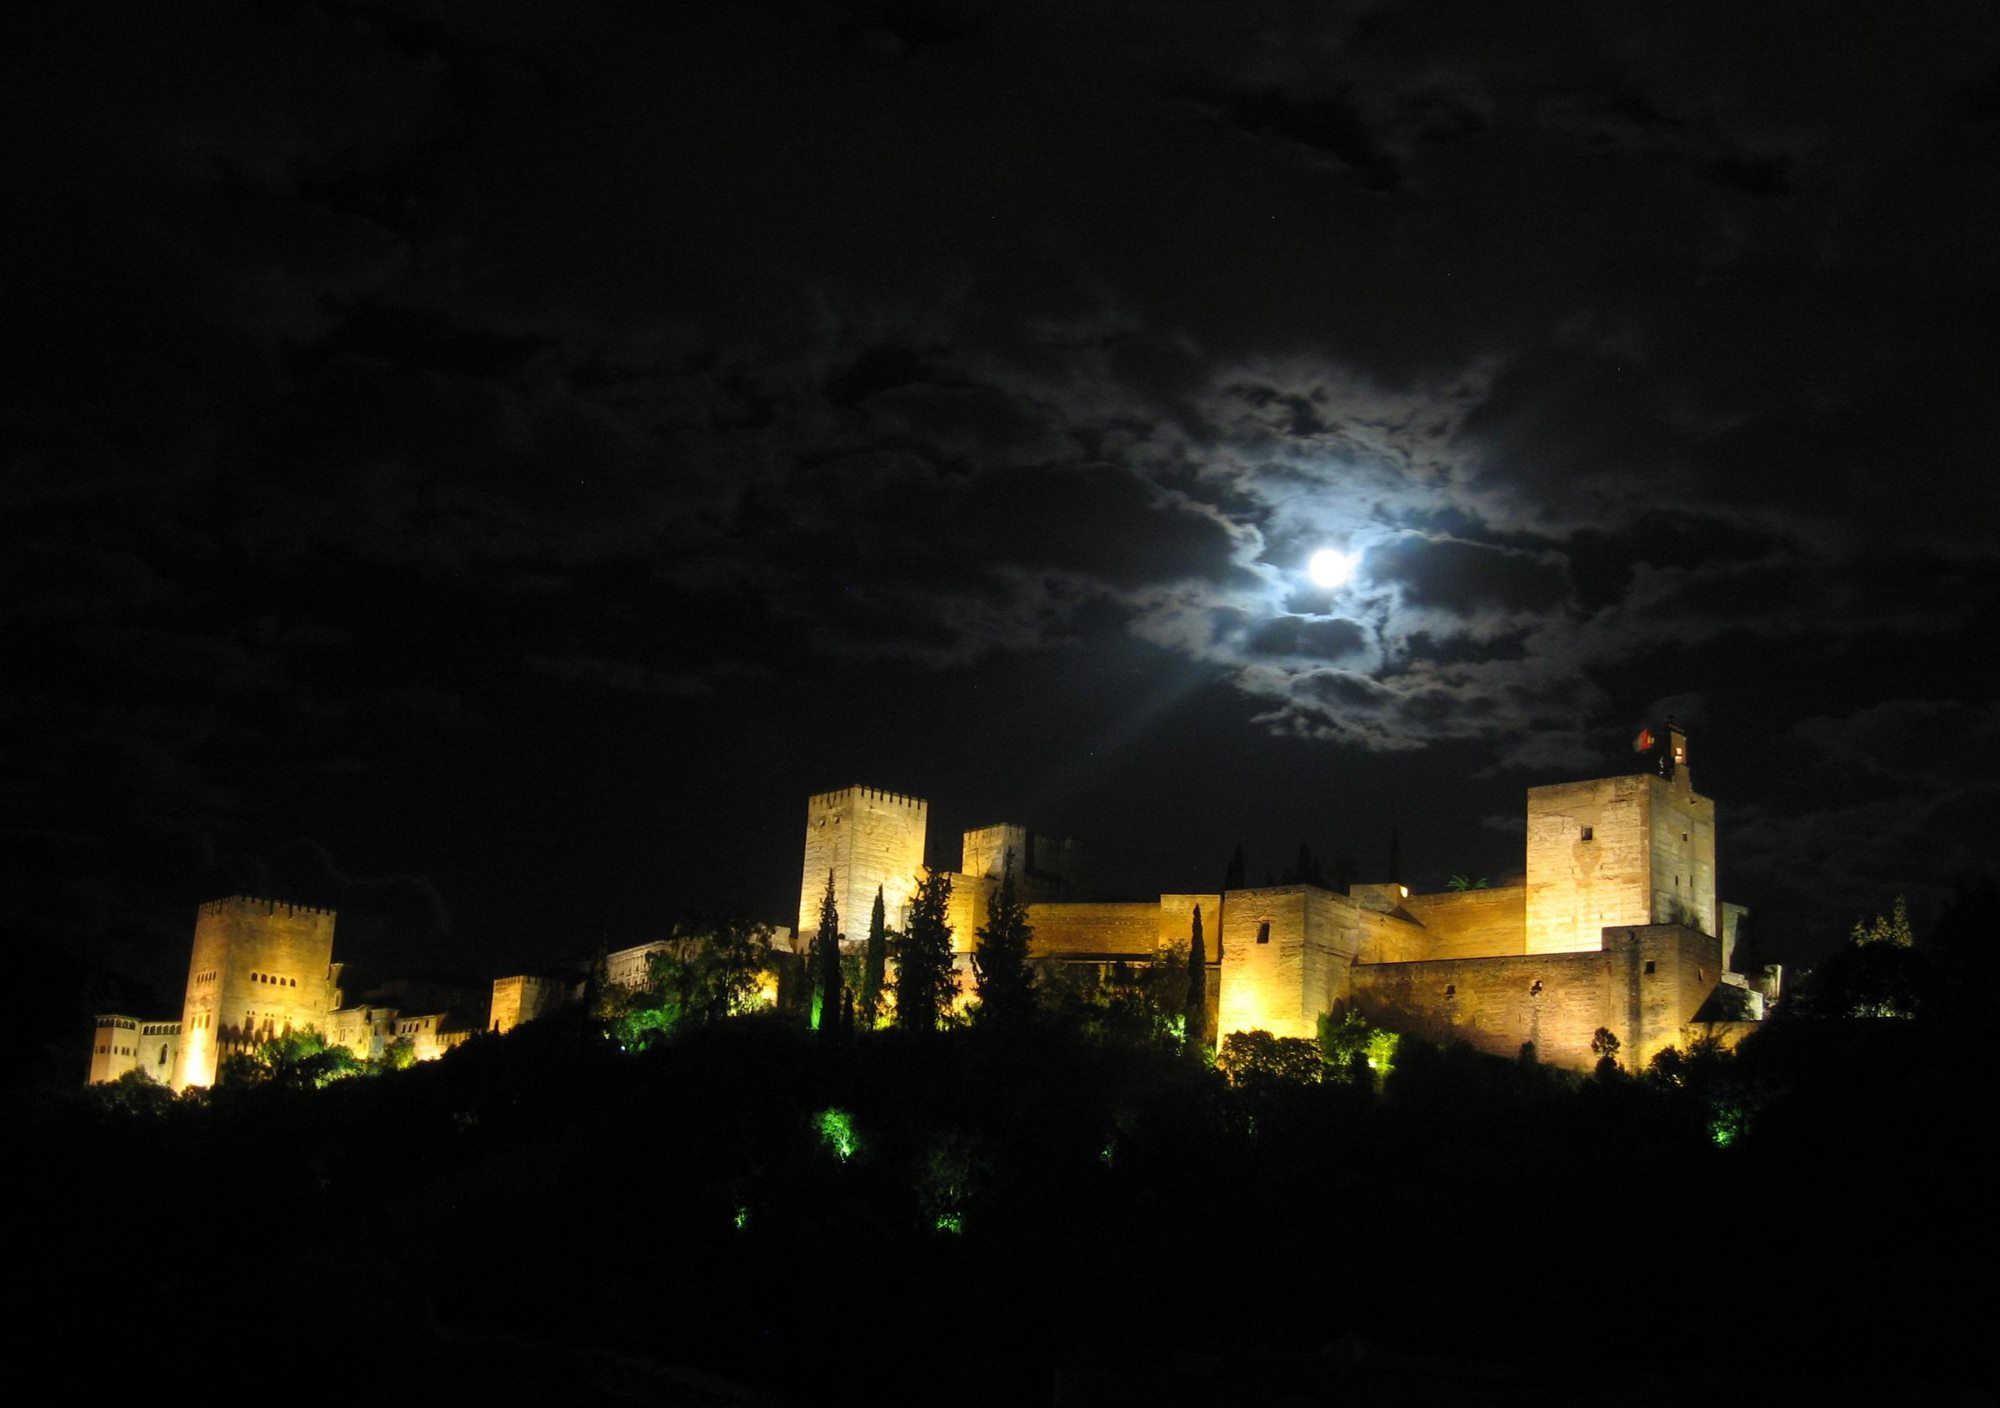 Night guided tour Visit to the Alhambra Nasrid Palaces lions court